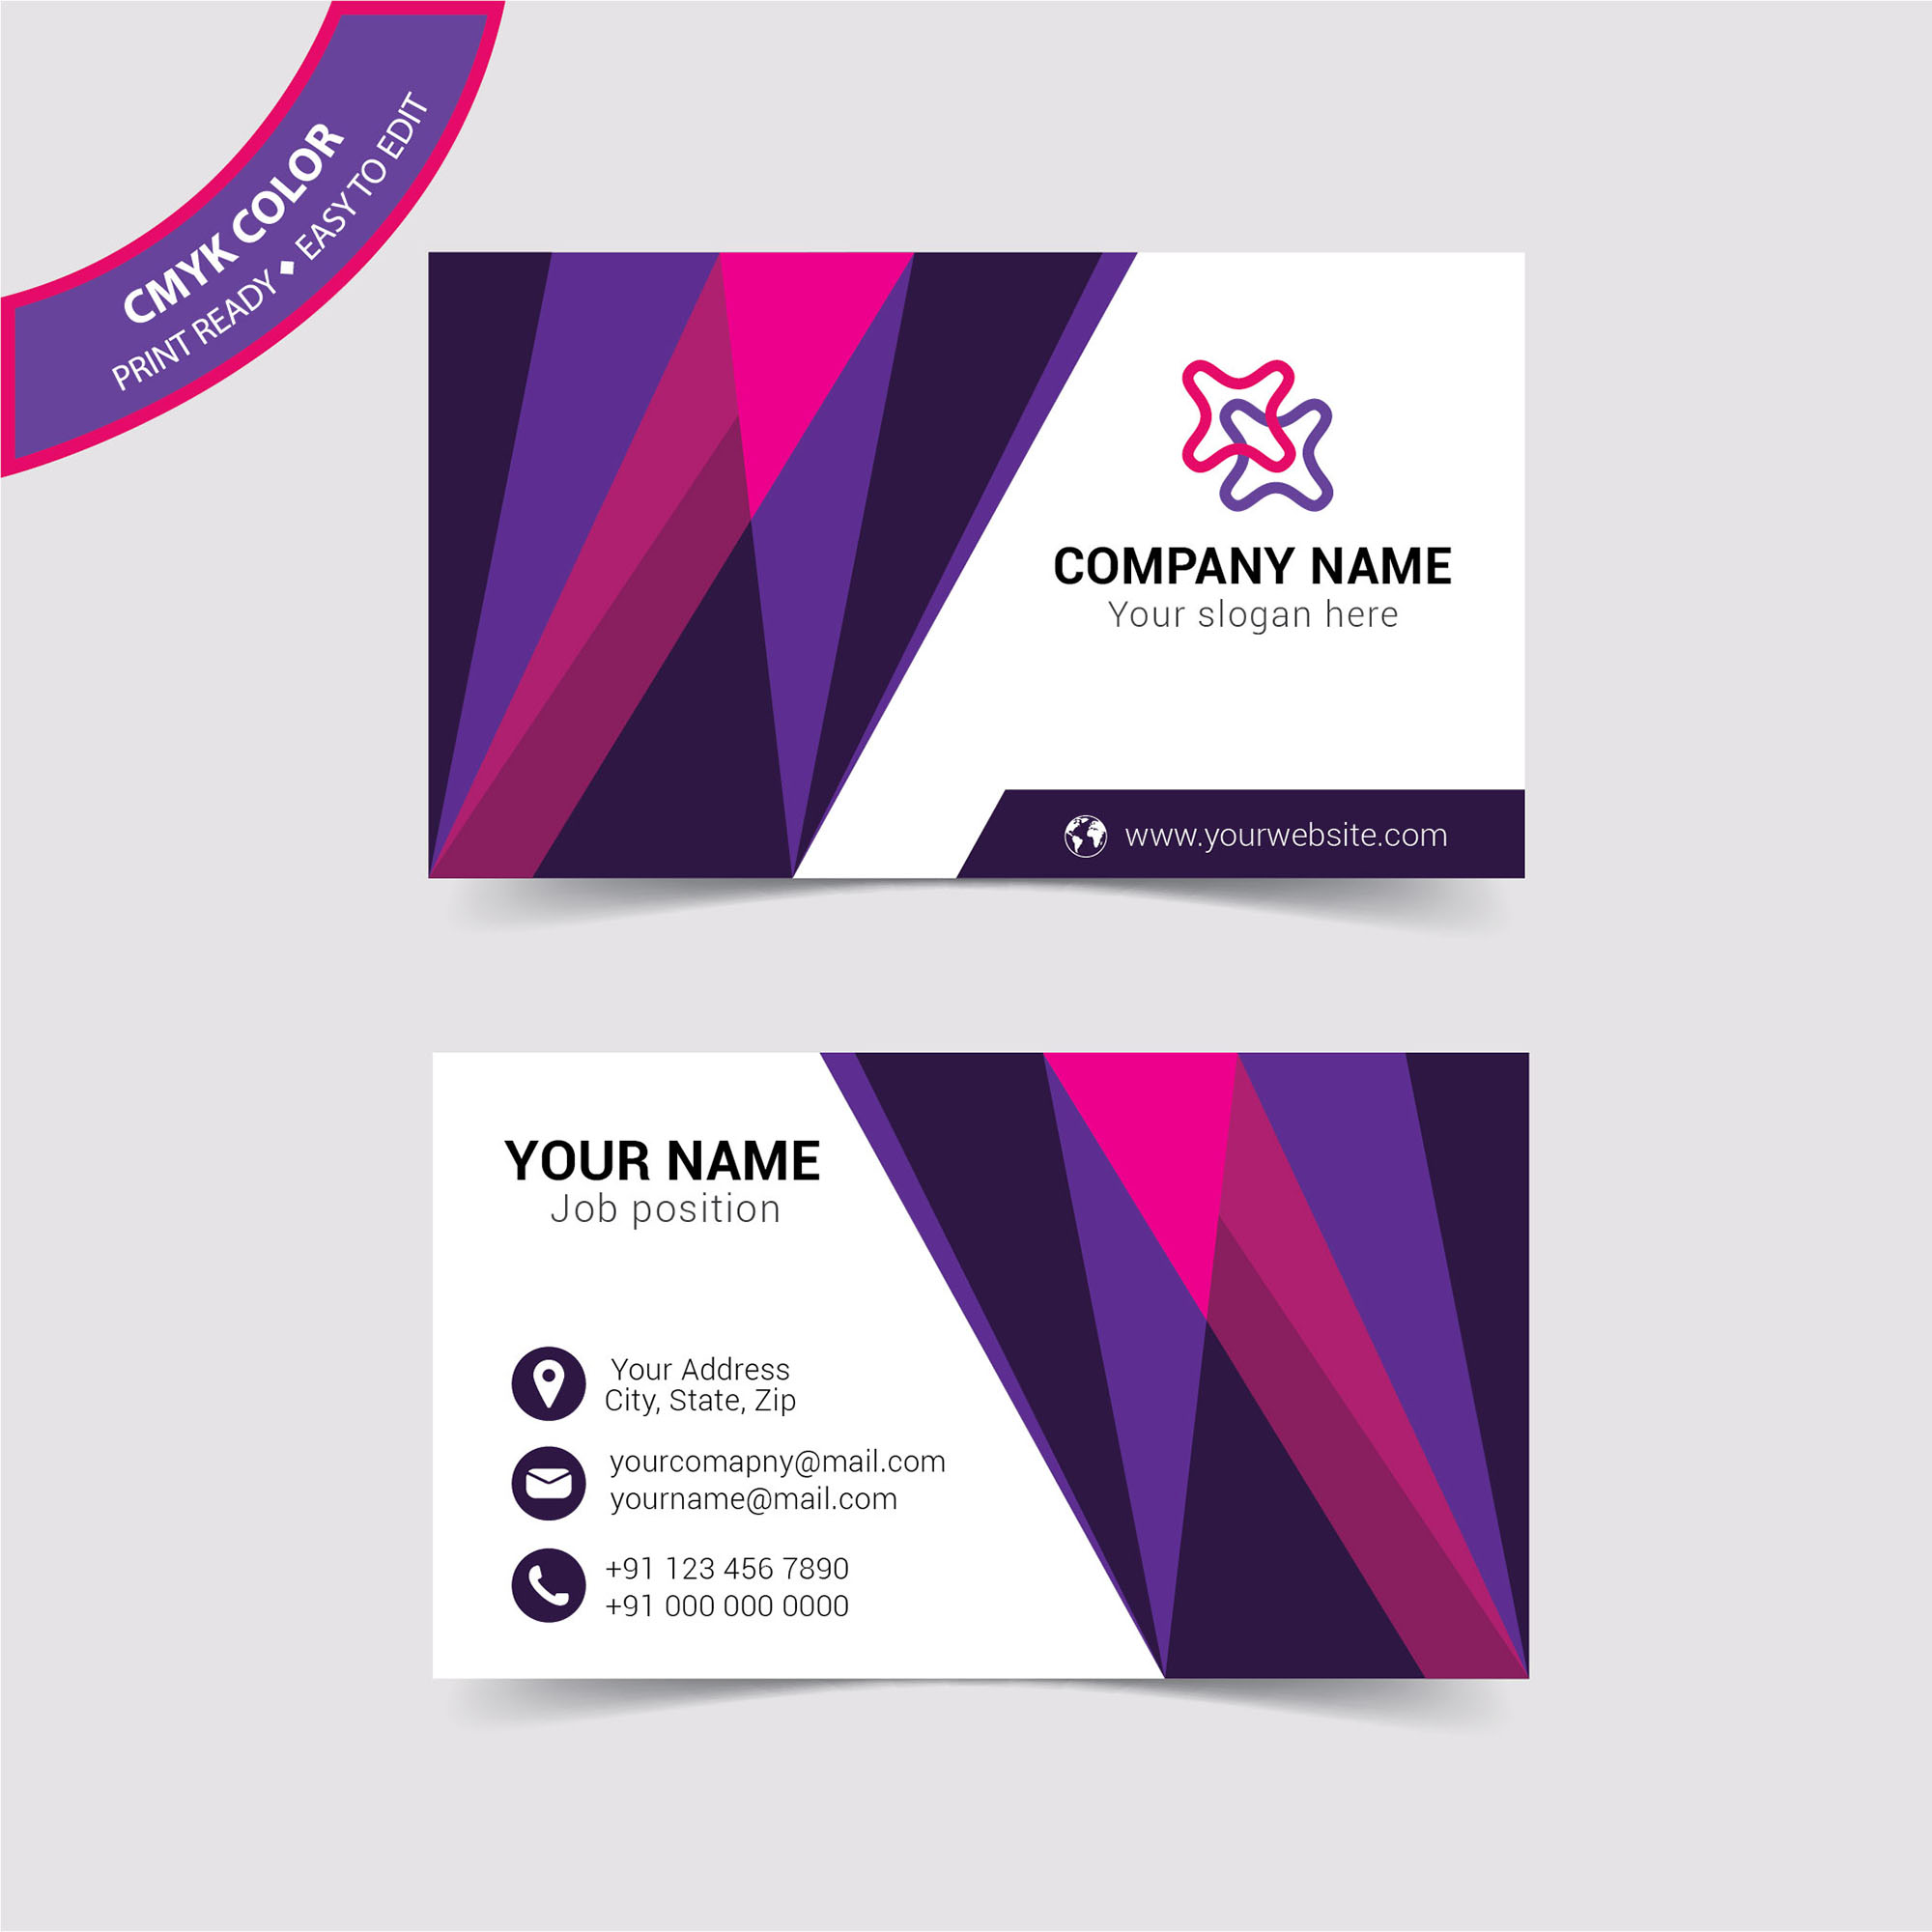 Free business card template for illustrator wisxi business card business cards business card design business card template design templates fbccfo Images